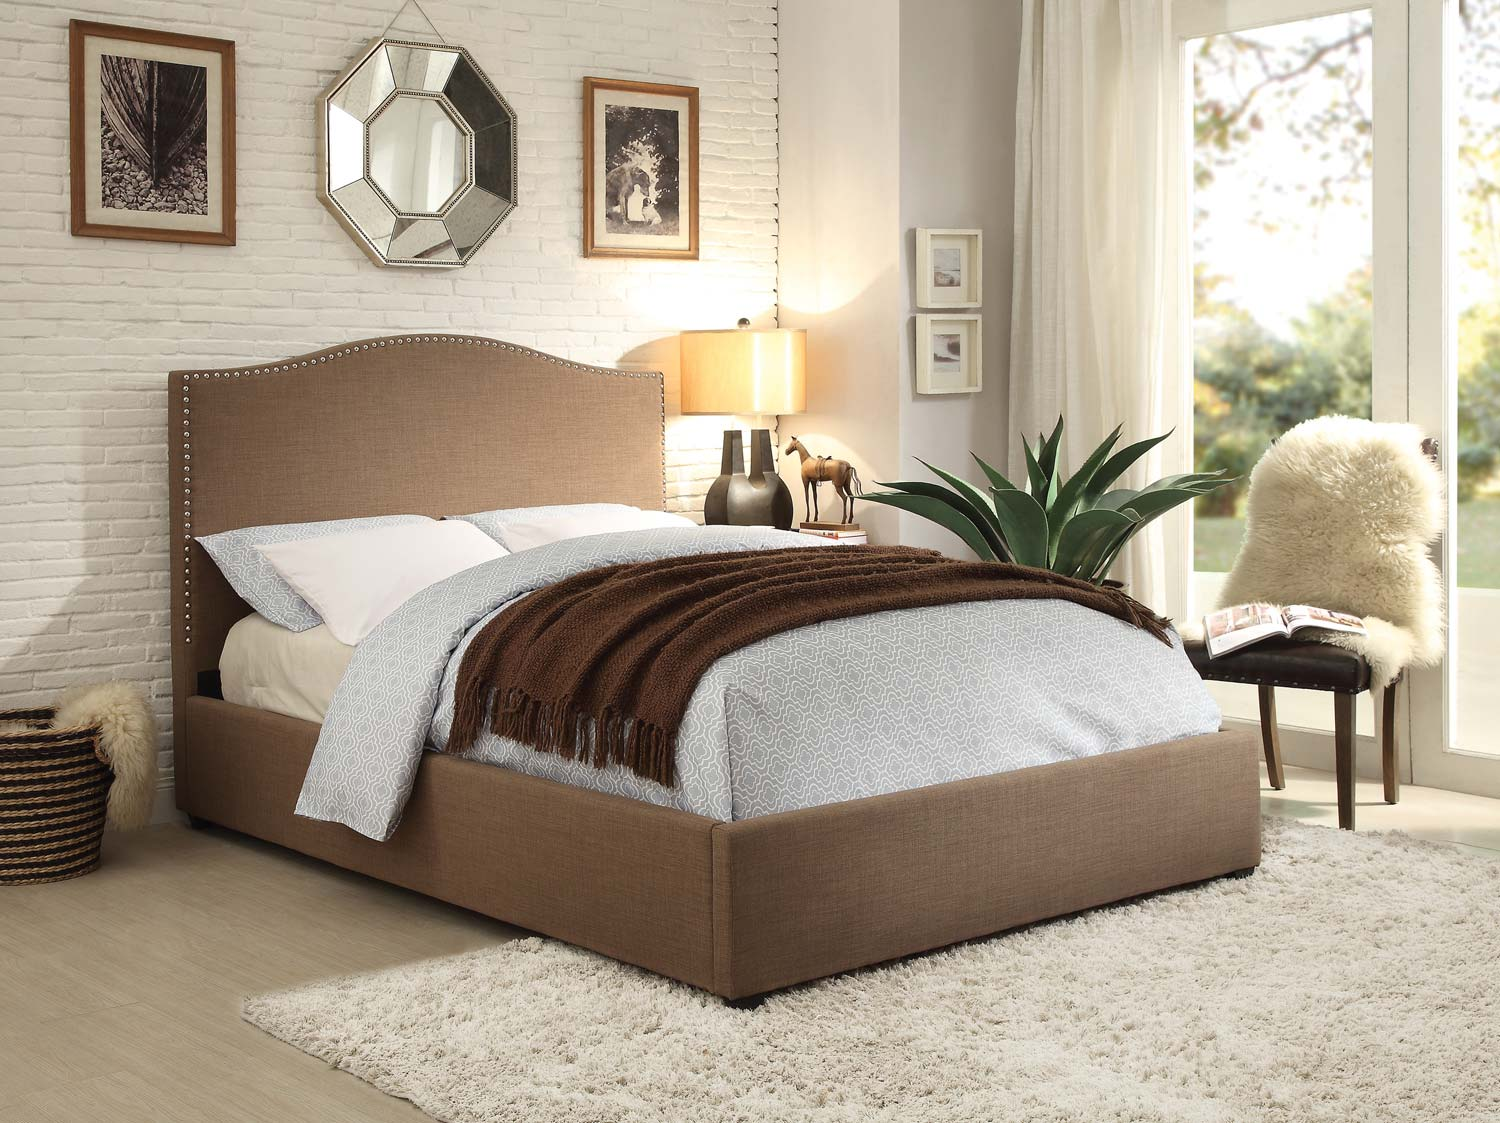 Homelegance Kase Upholstered Bed - Brown